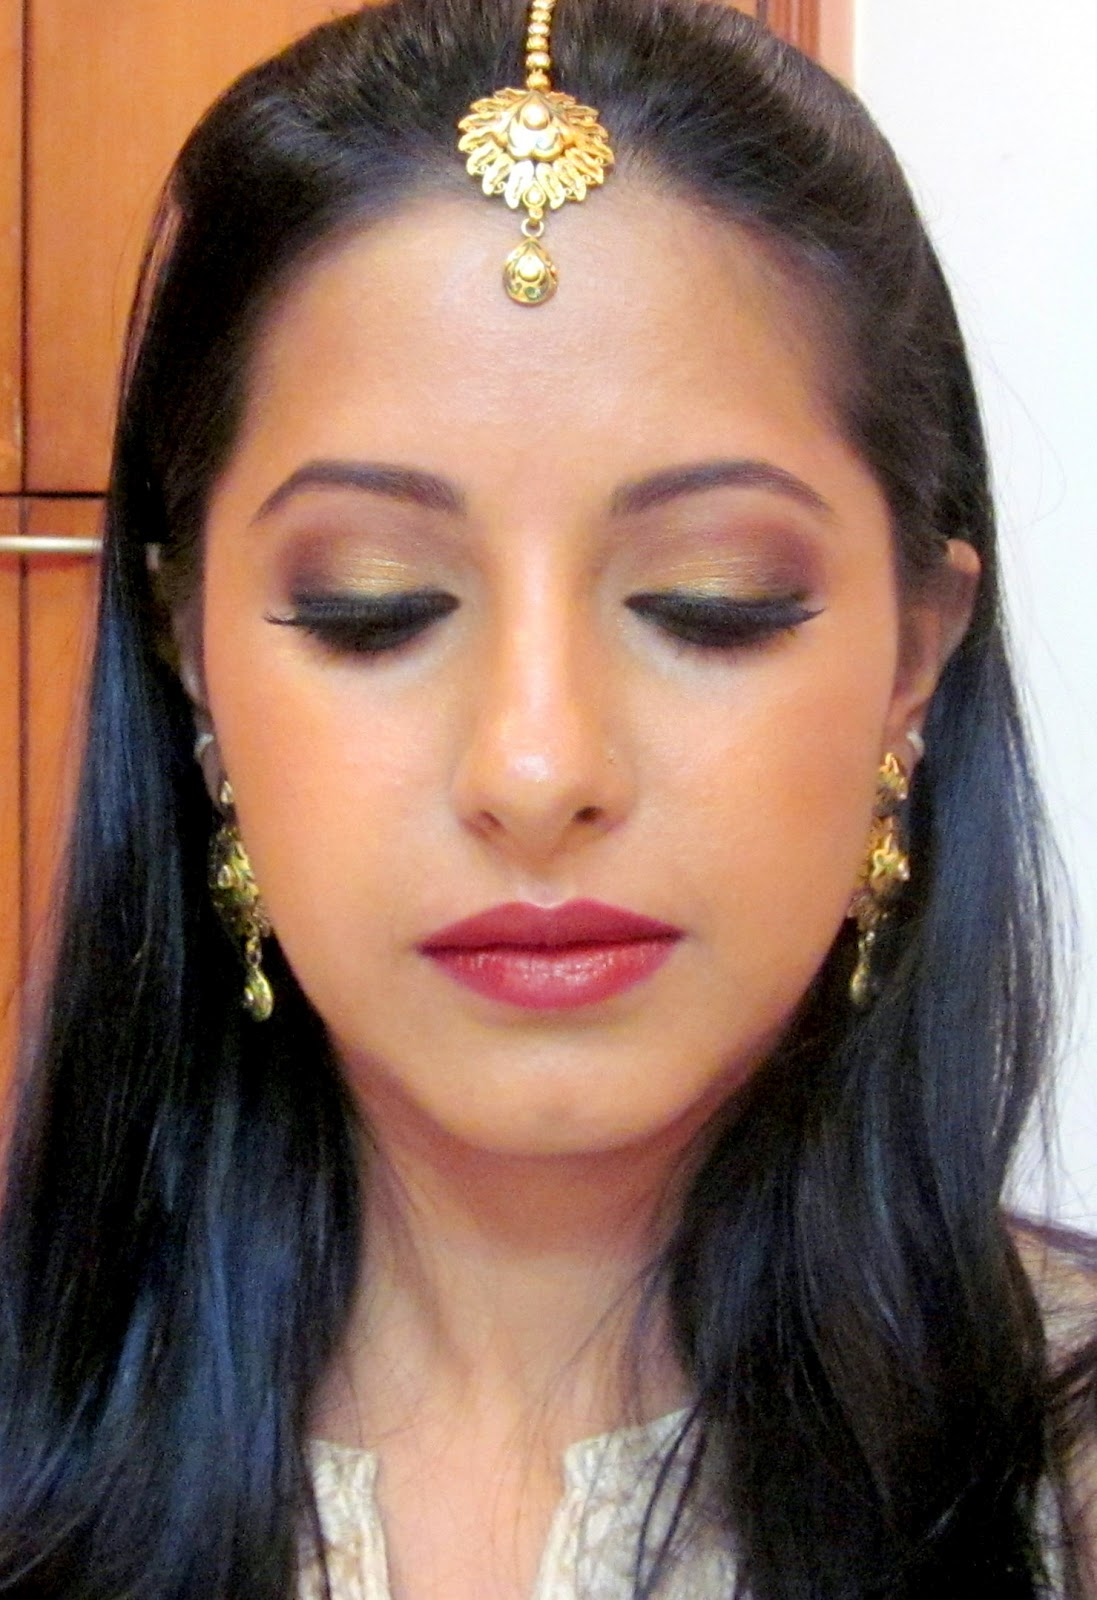 Product List for Indian Bridal Makeup Tutorial